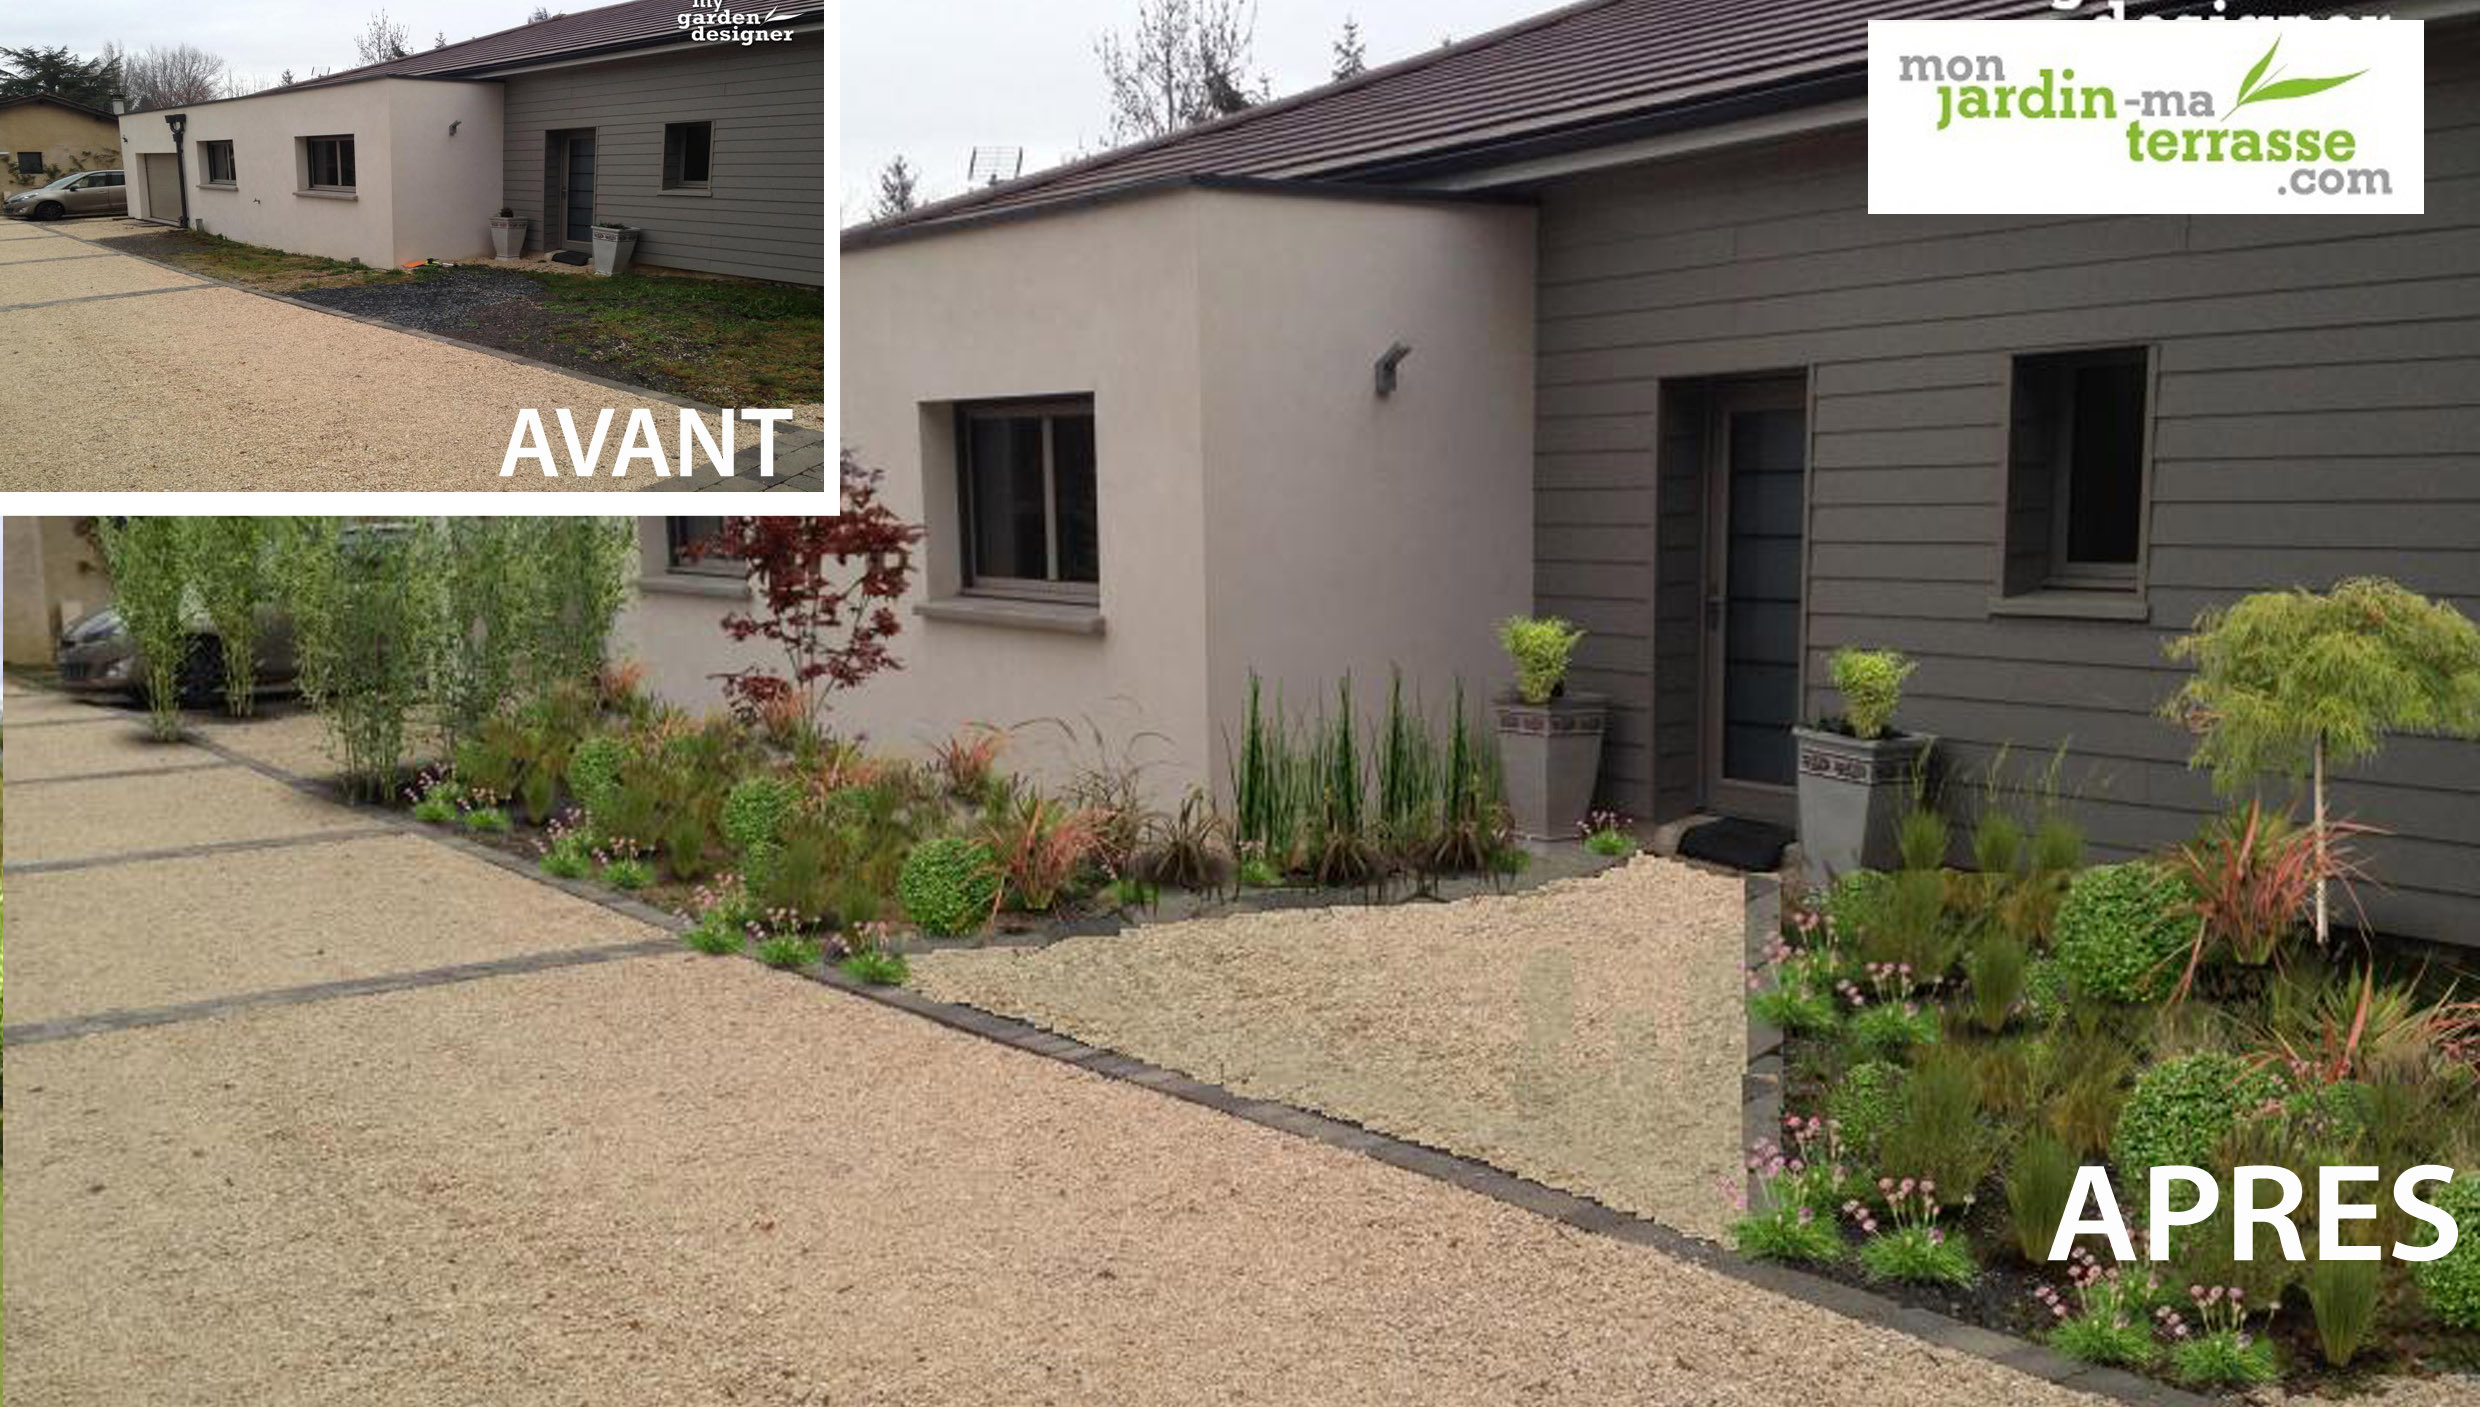 Am nager un jardin contemporain les r gles monjardin for Amenagement exterieur petit terrain